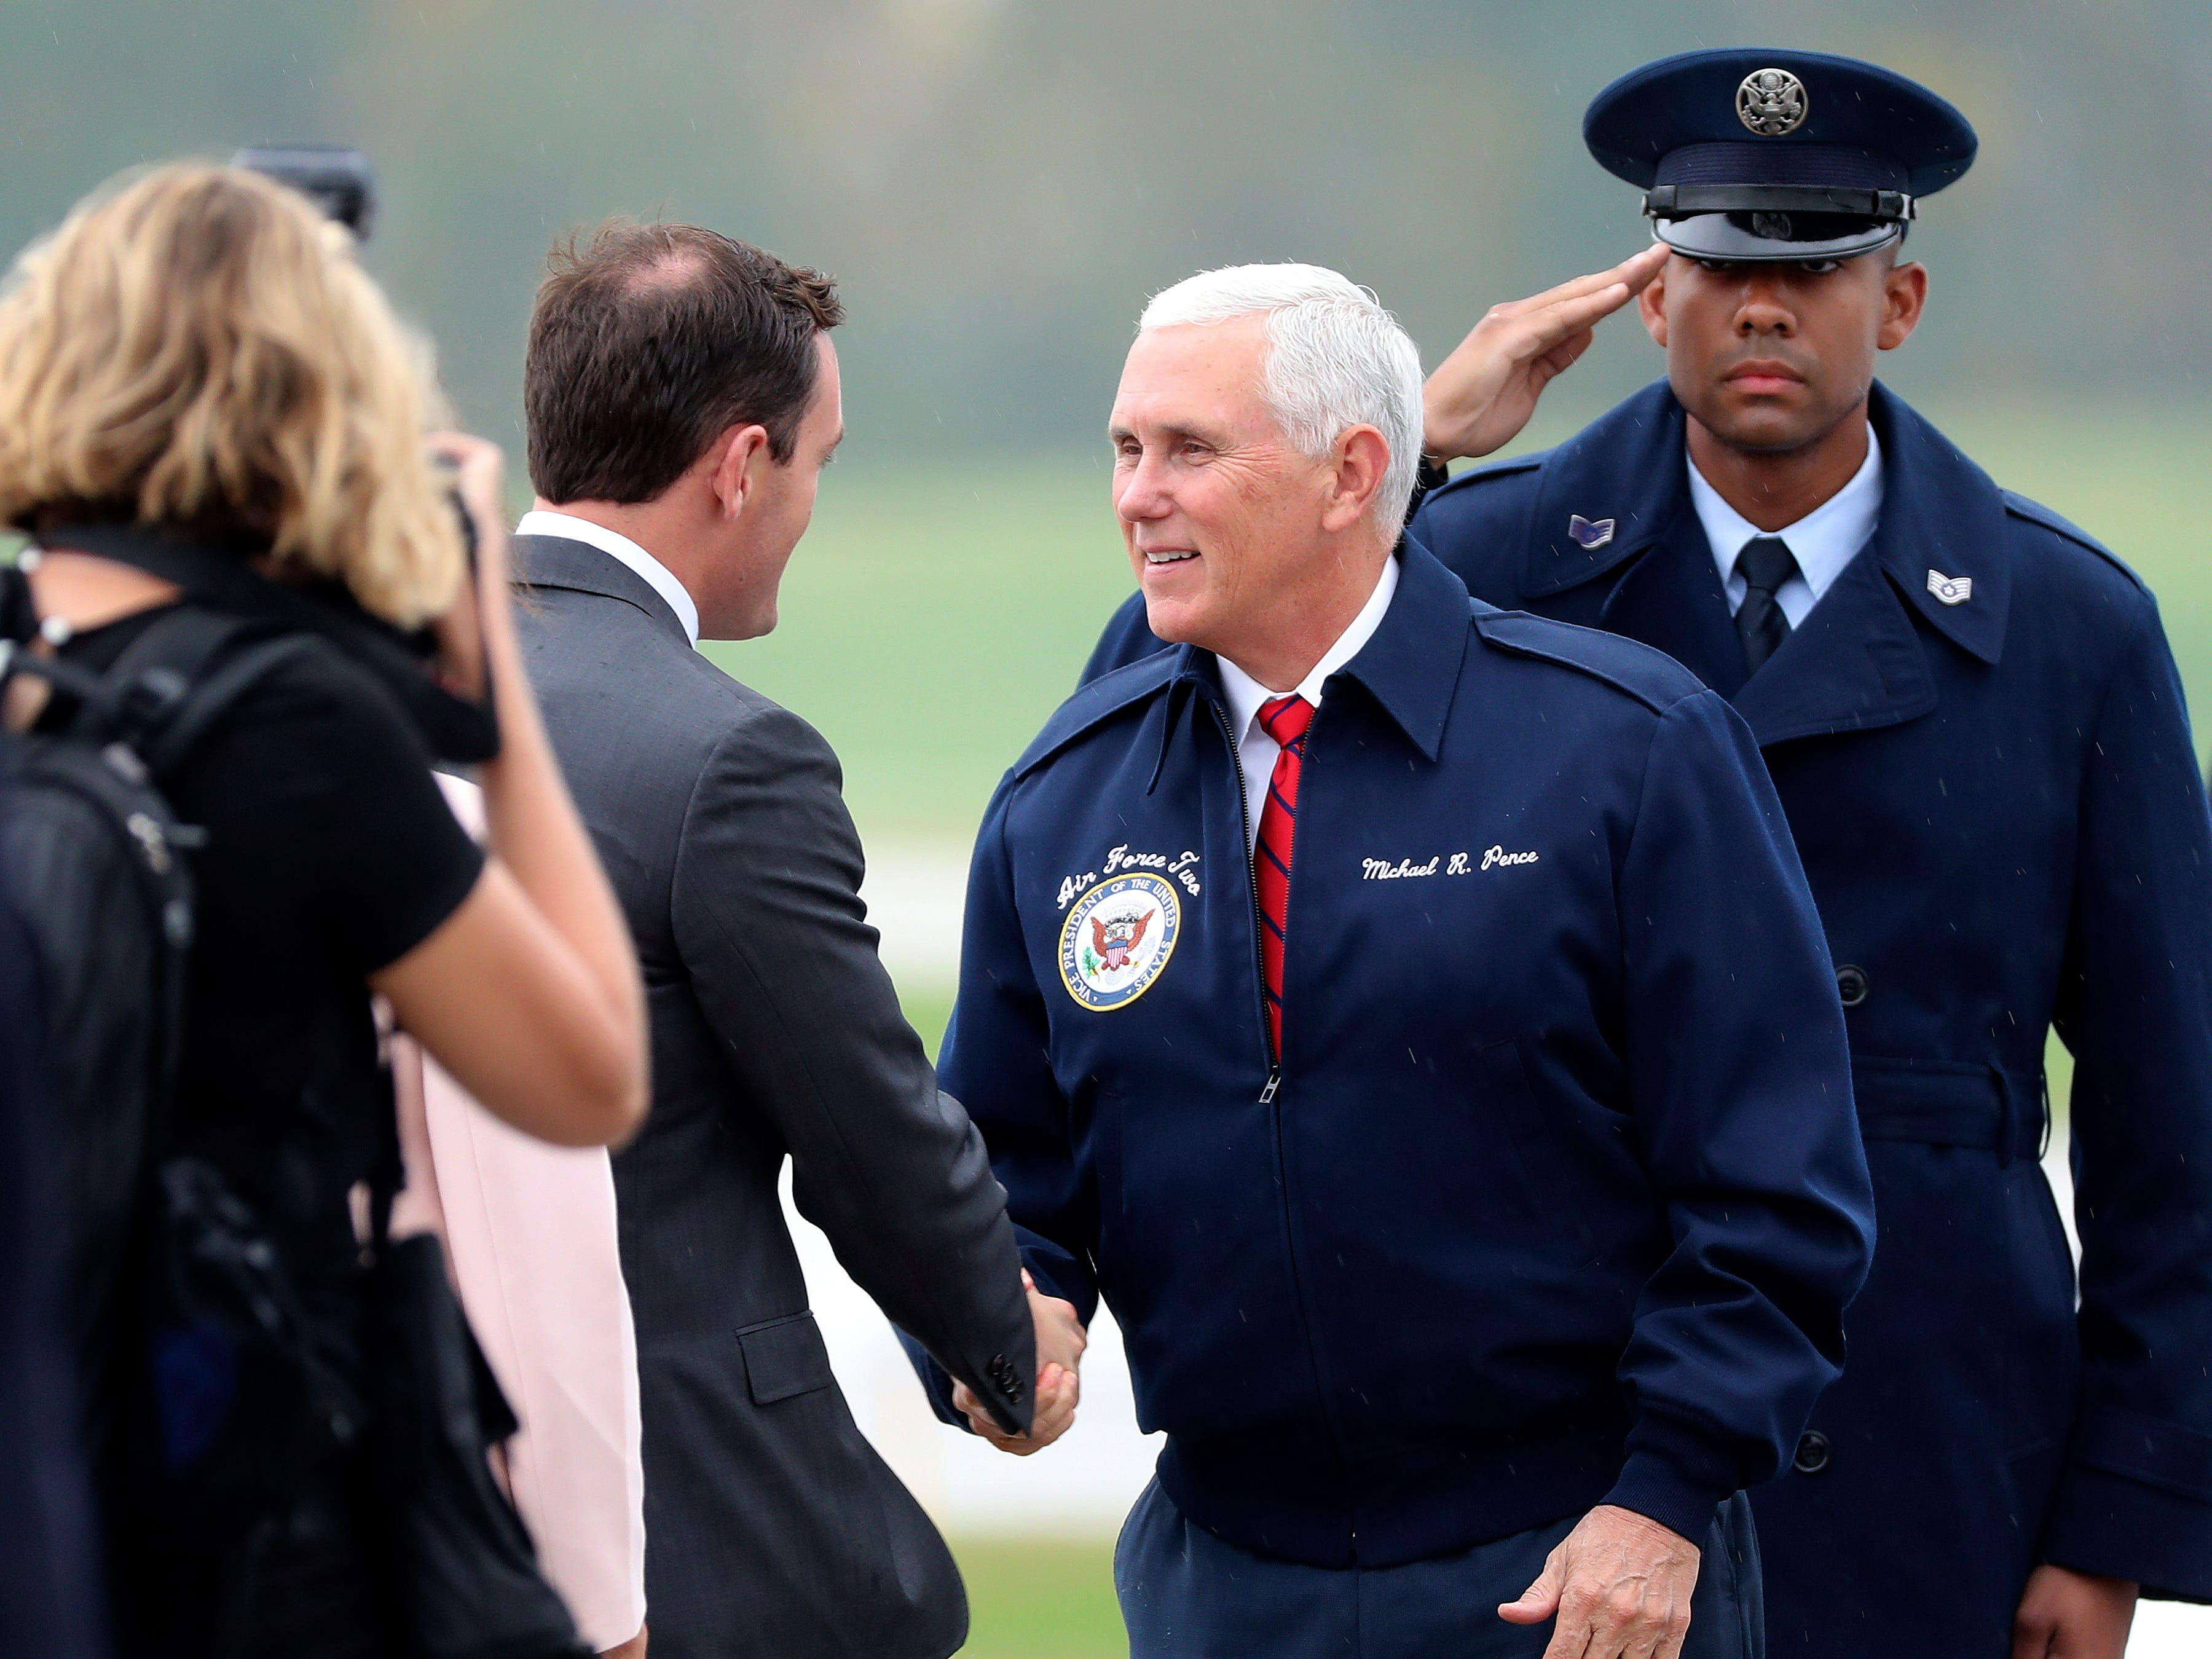 Vice President Mike Pence greets U.S. Rep. Mike Gallagher at Green Bay's Austin Straubel International Airport on Wednesday, Oct. 10, 2018.